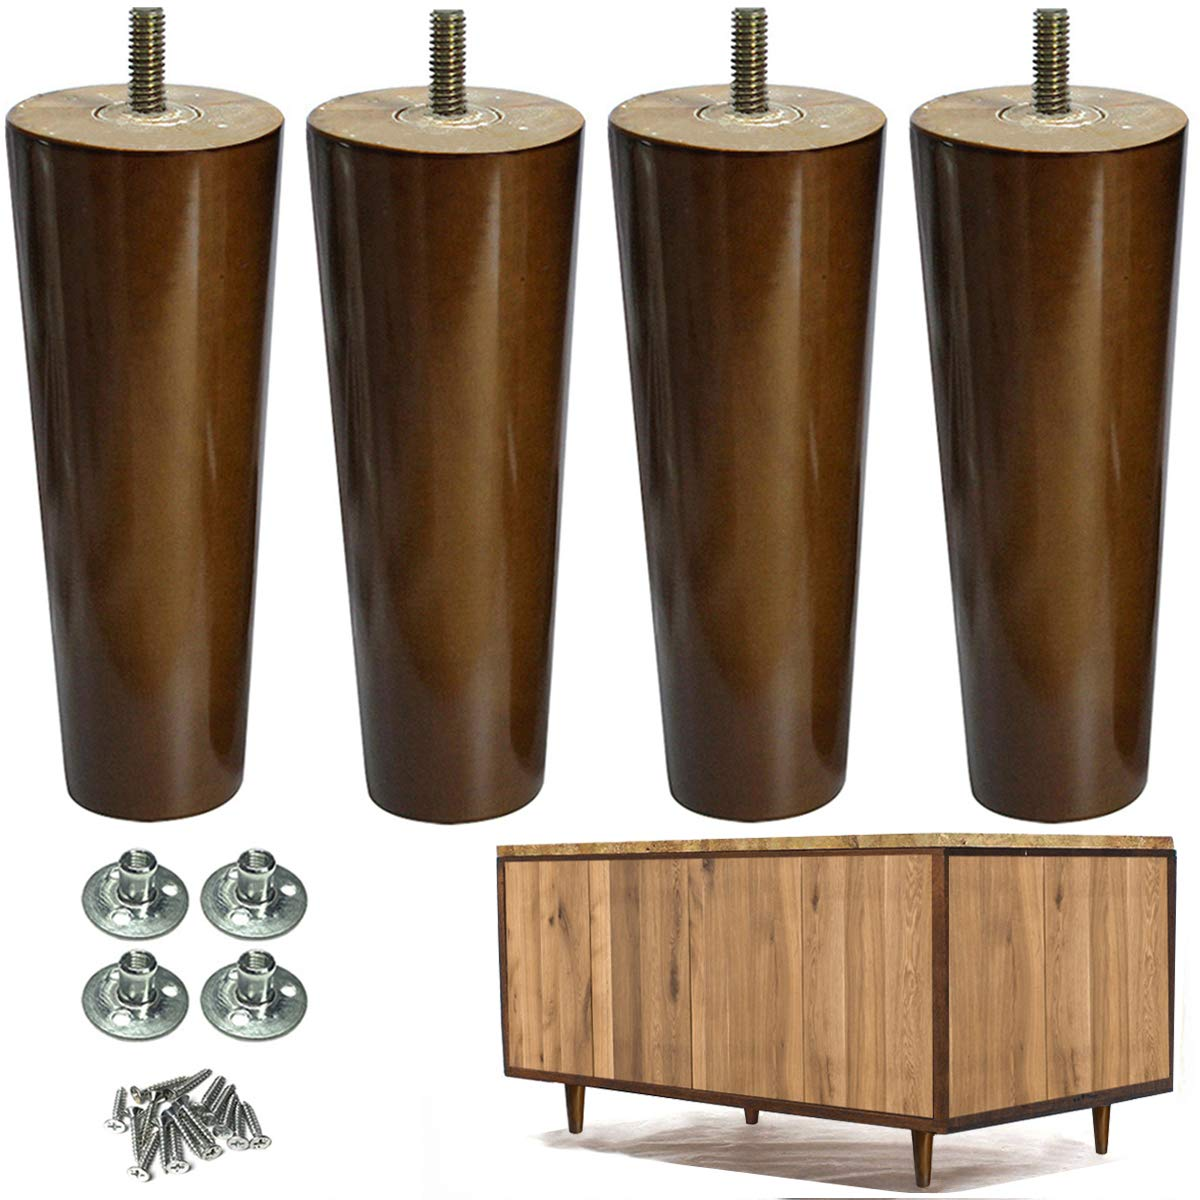 Furniture Legs Wood Sofa Legs Replacement Legs For Cabinet Vanity